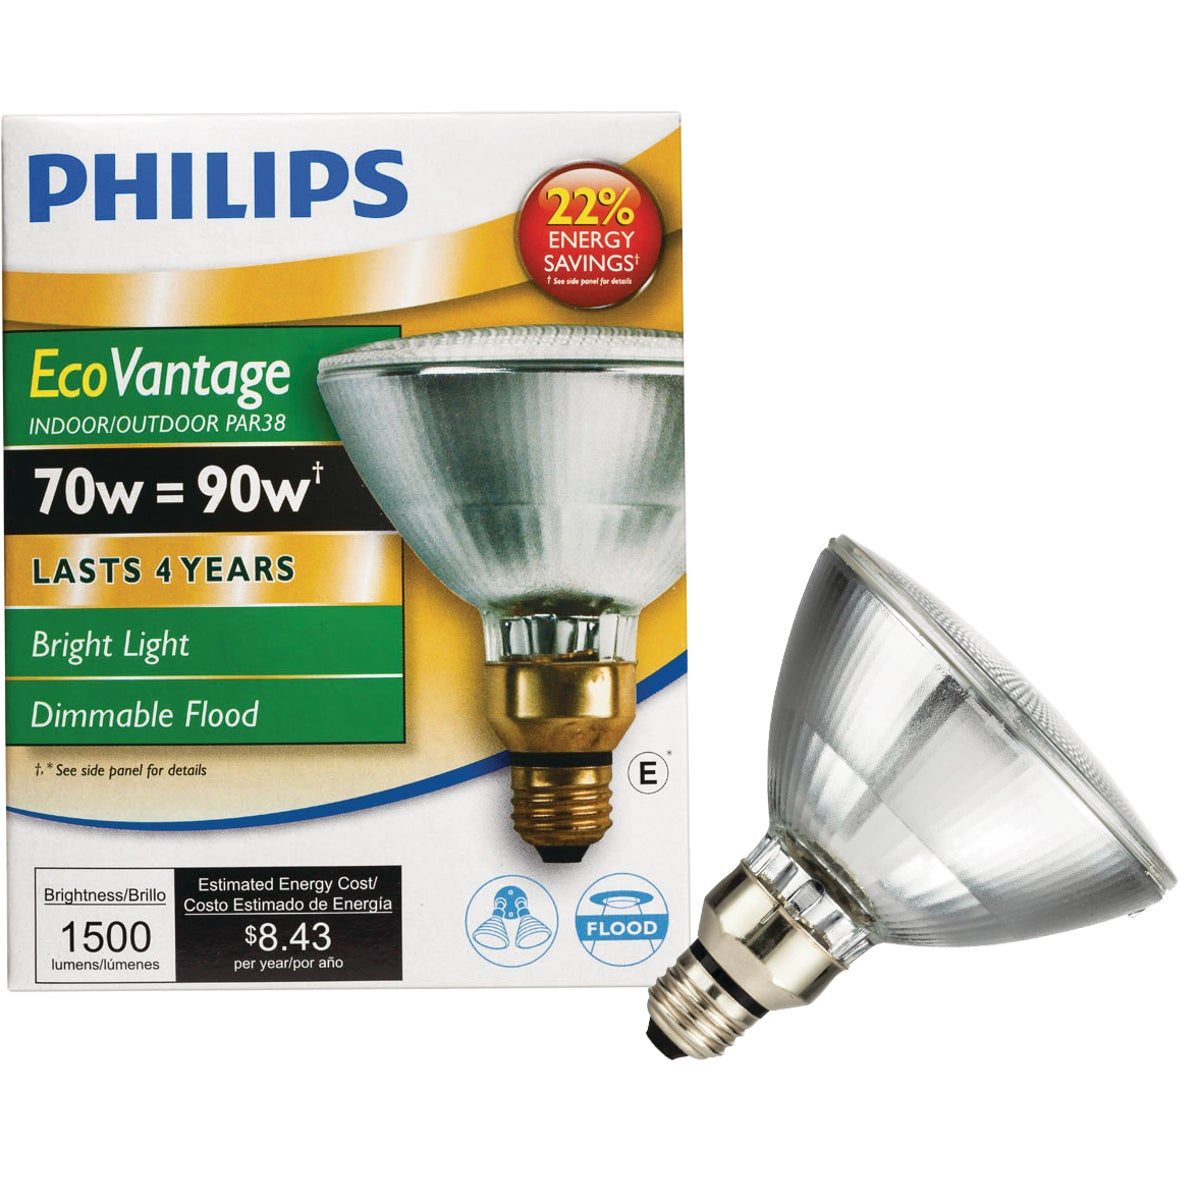 75W PAR FLD HALOGEN BULB - 62231 75PARHIR8KFL25 by G E Lighting